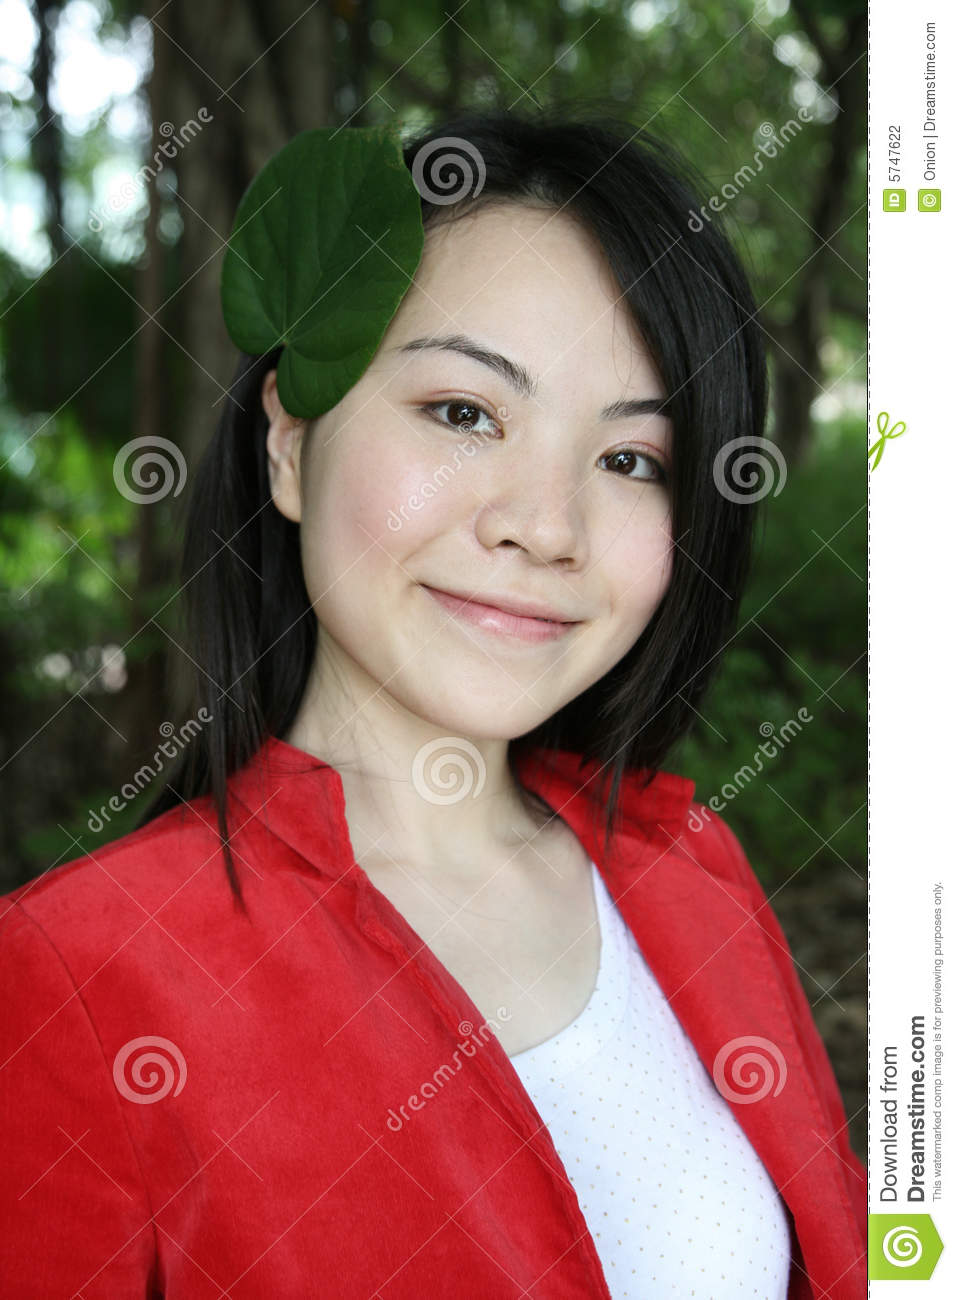 Looking for chinese girlfriend